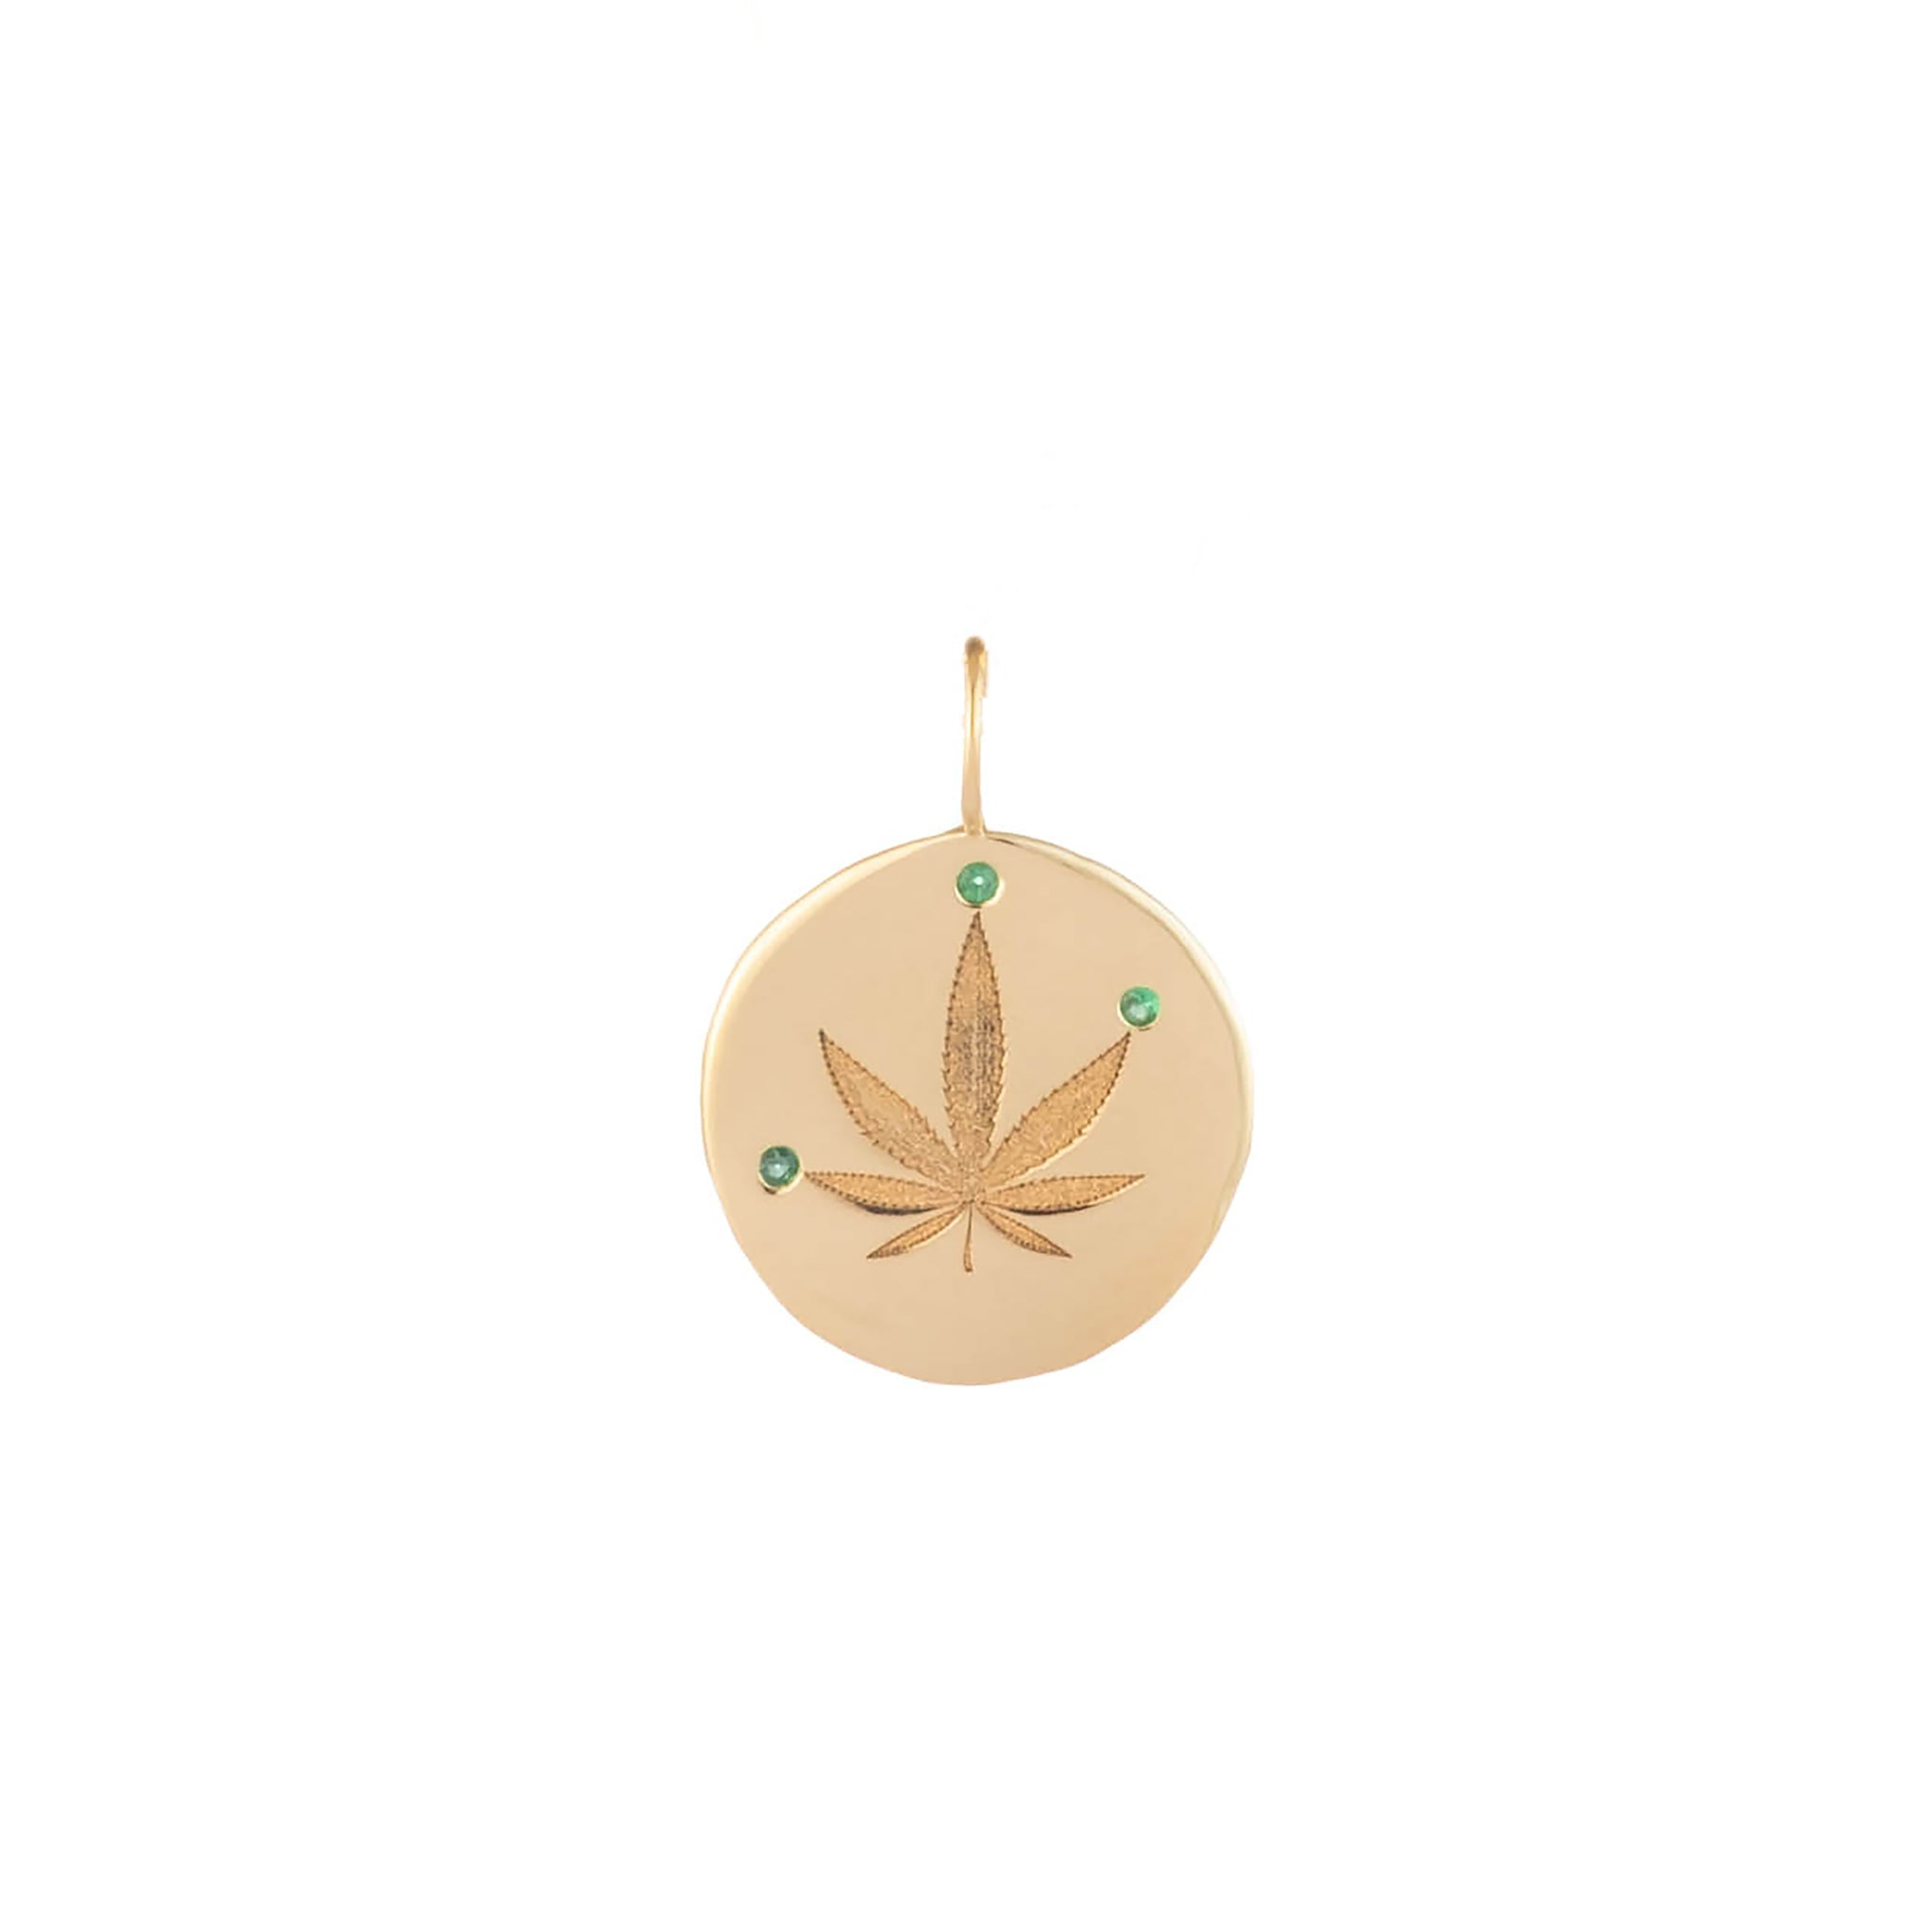 pot leaf cannabis leaf jewelry stoner jewelry gold engraved charm custom charm necklace rock n roll jewelry green day